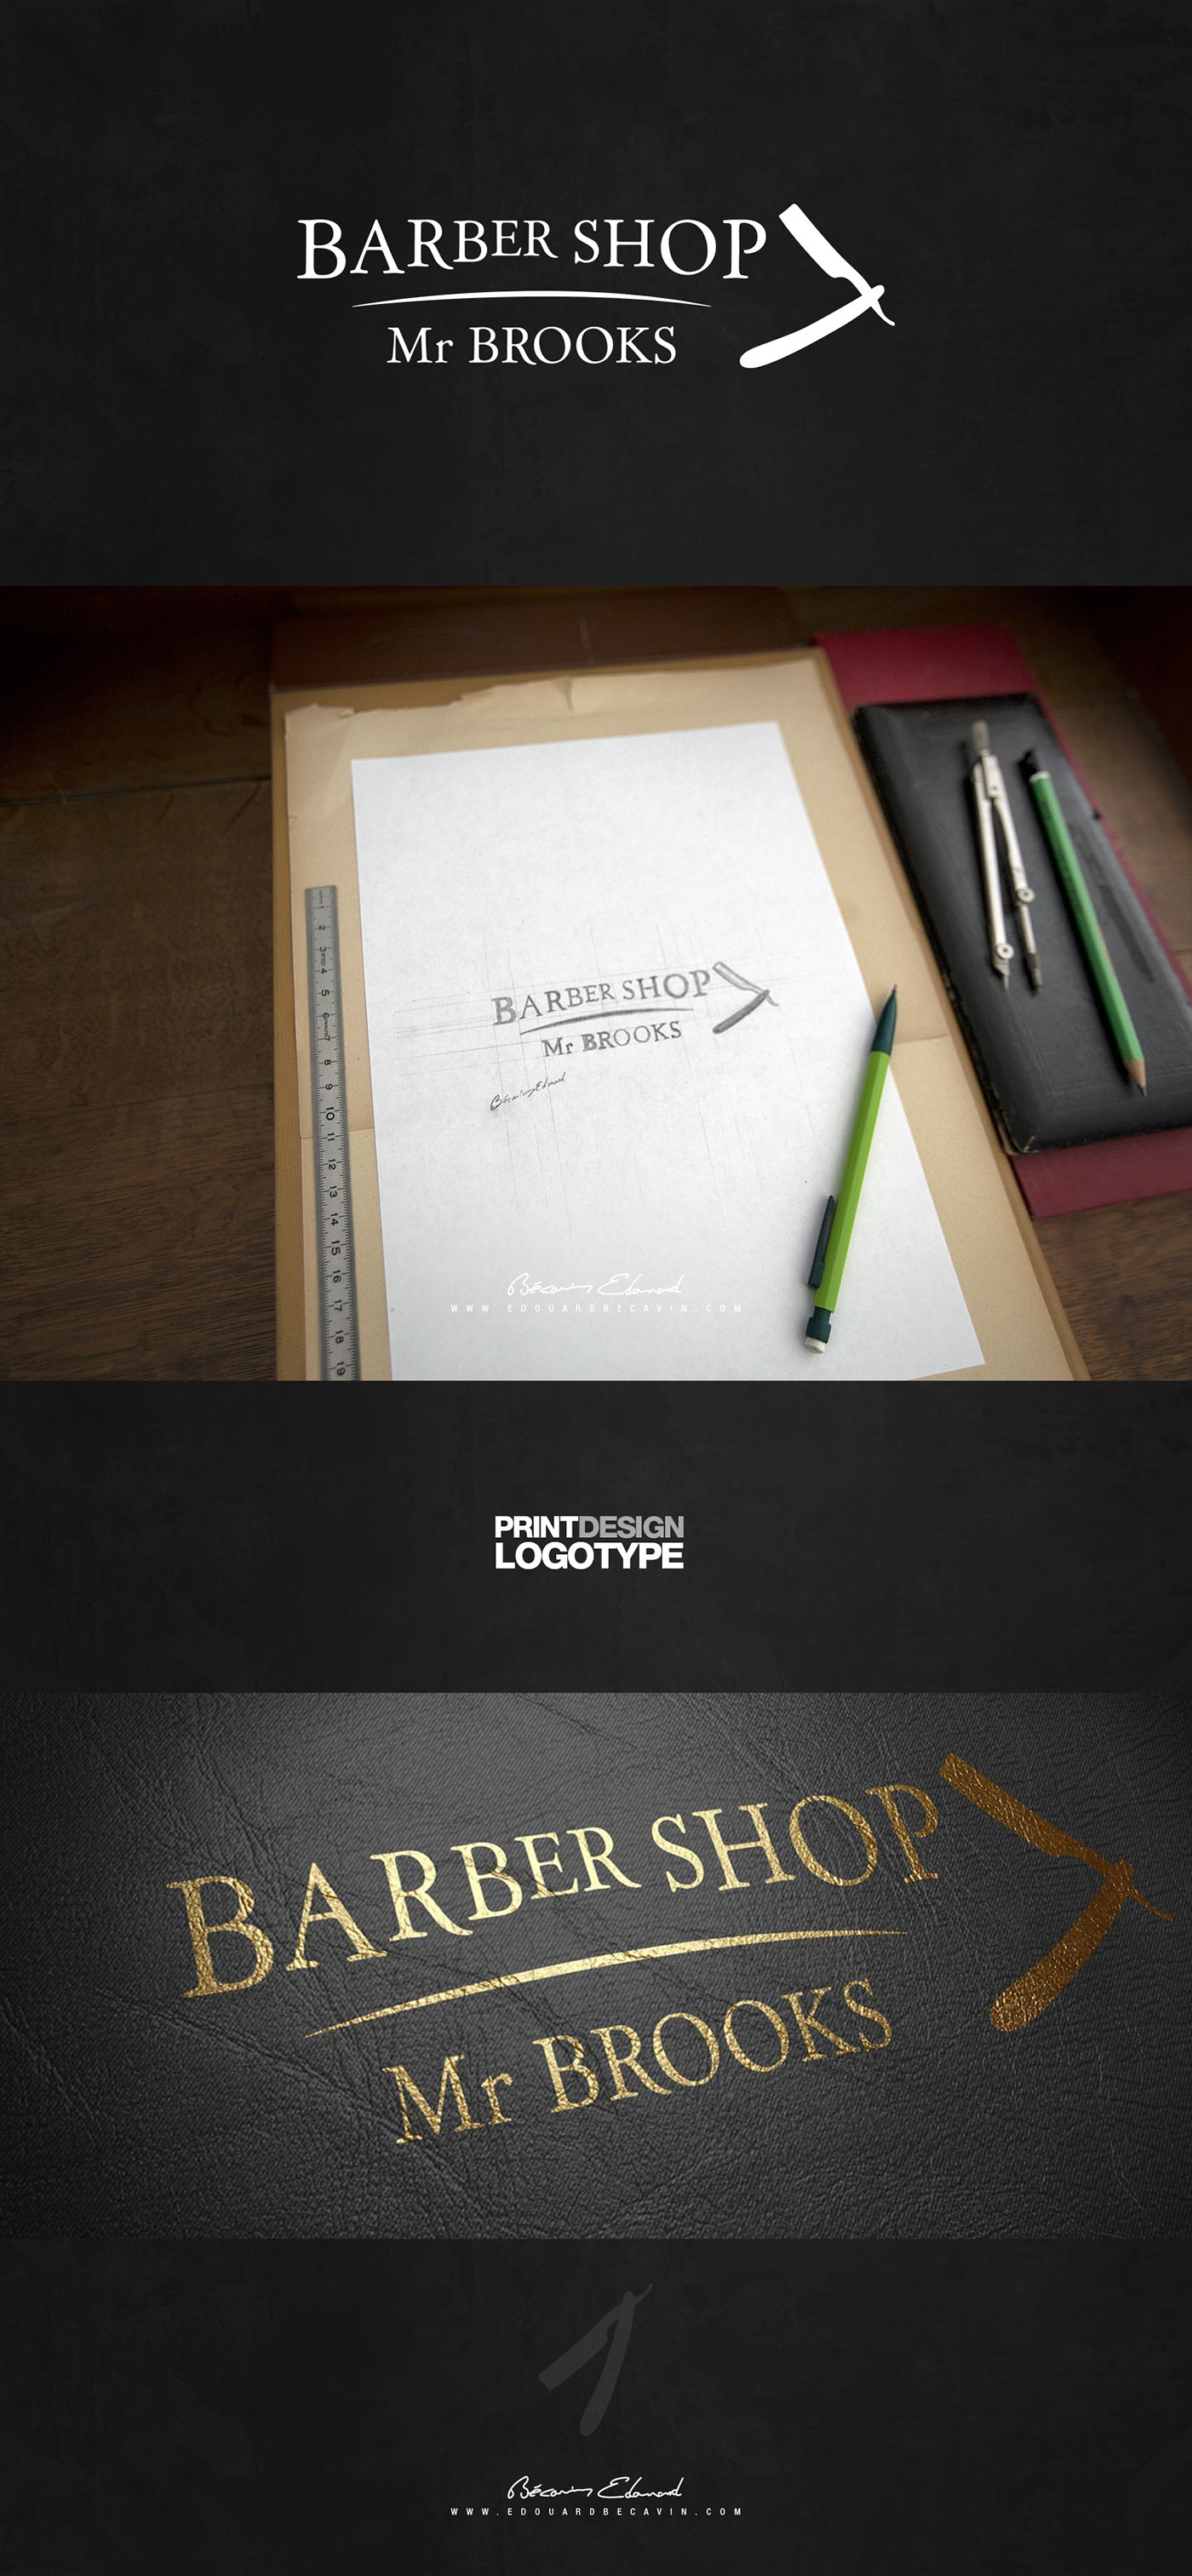 Création logotype : Barber Shop Mr Brooks.